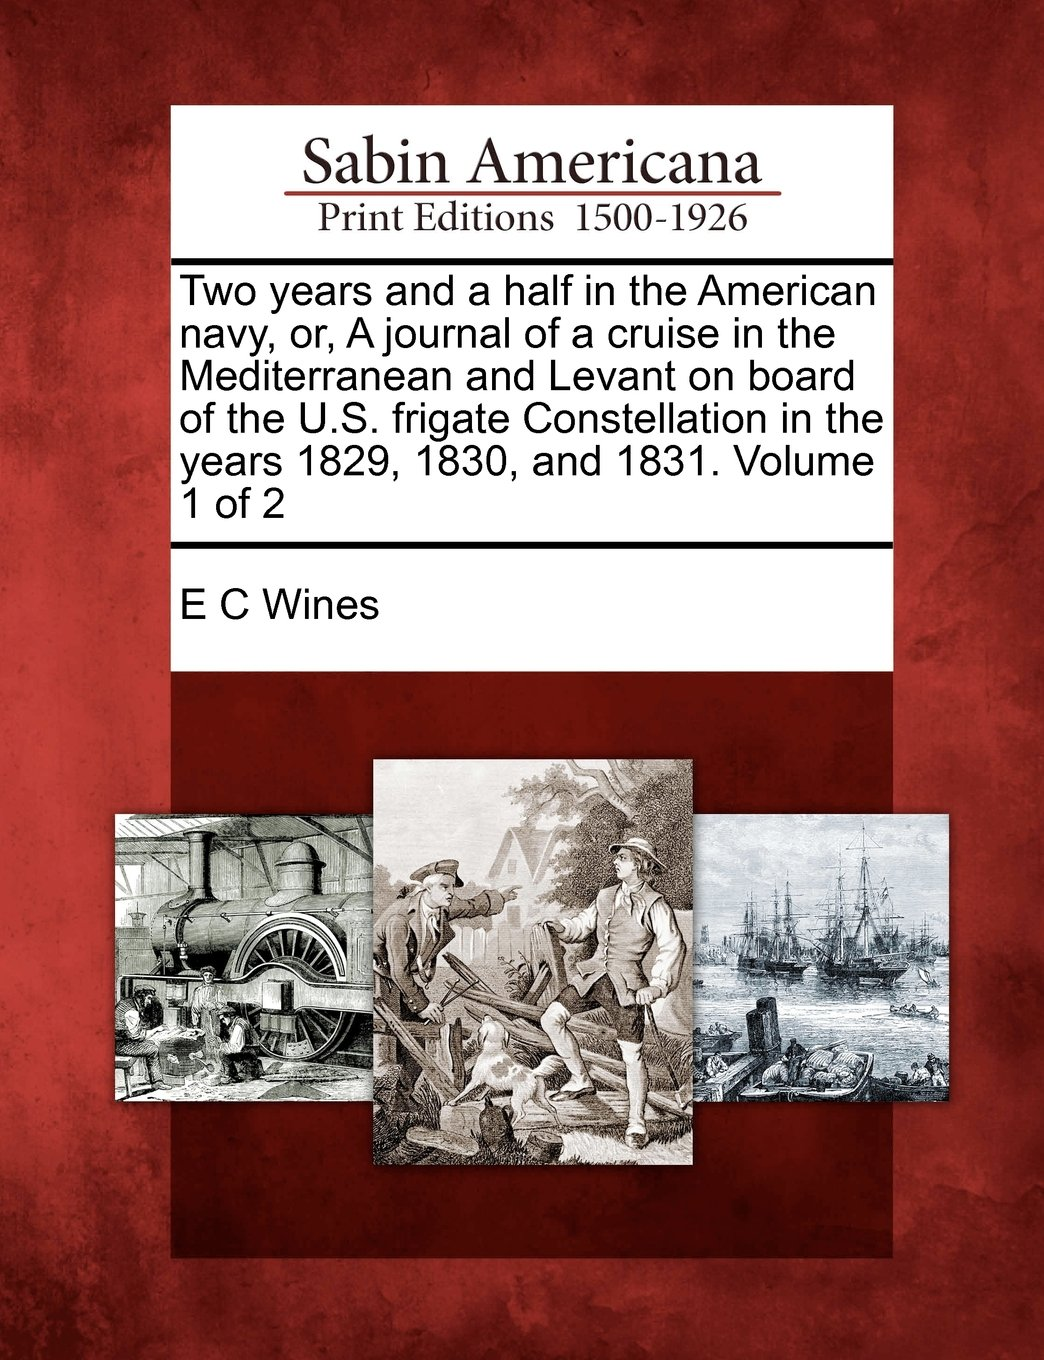 Download Two years and a half in the American navy, or, A journal of a cruise in the Mediterranean and Levant on board of the U.S. frigate Constellation in the years 1829, 1830, and 1831. Volume 1 of 2 pdf